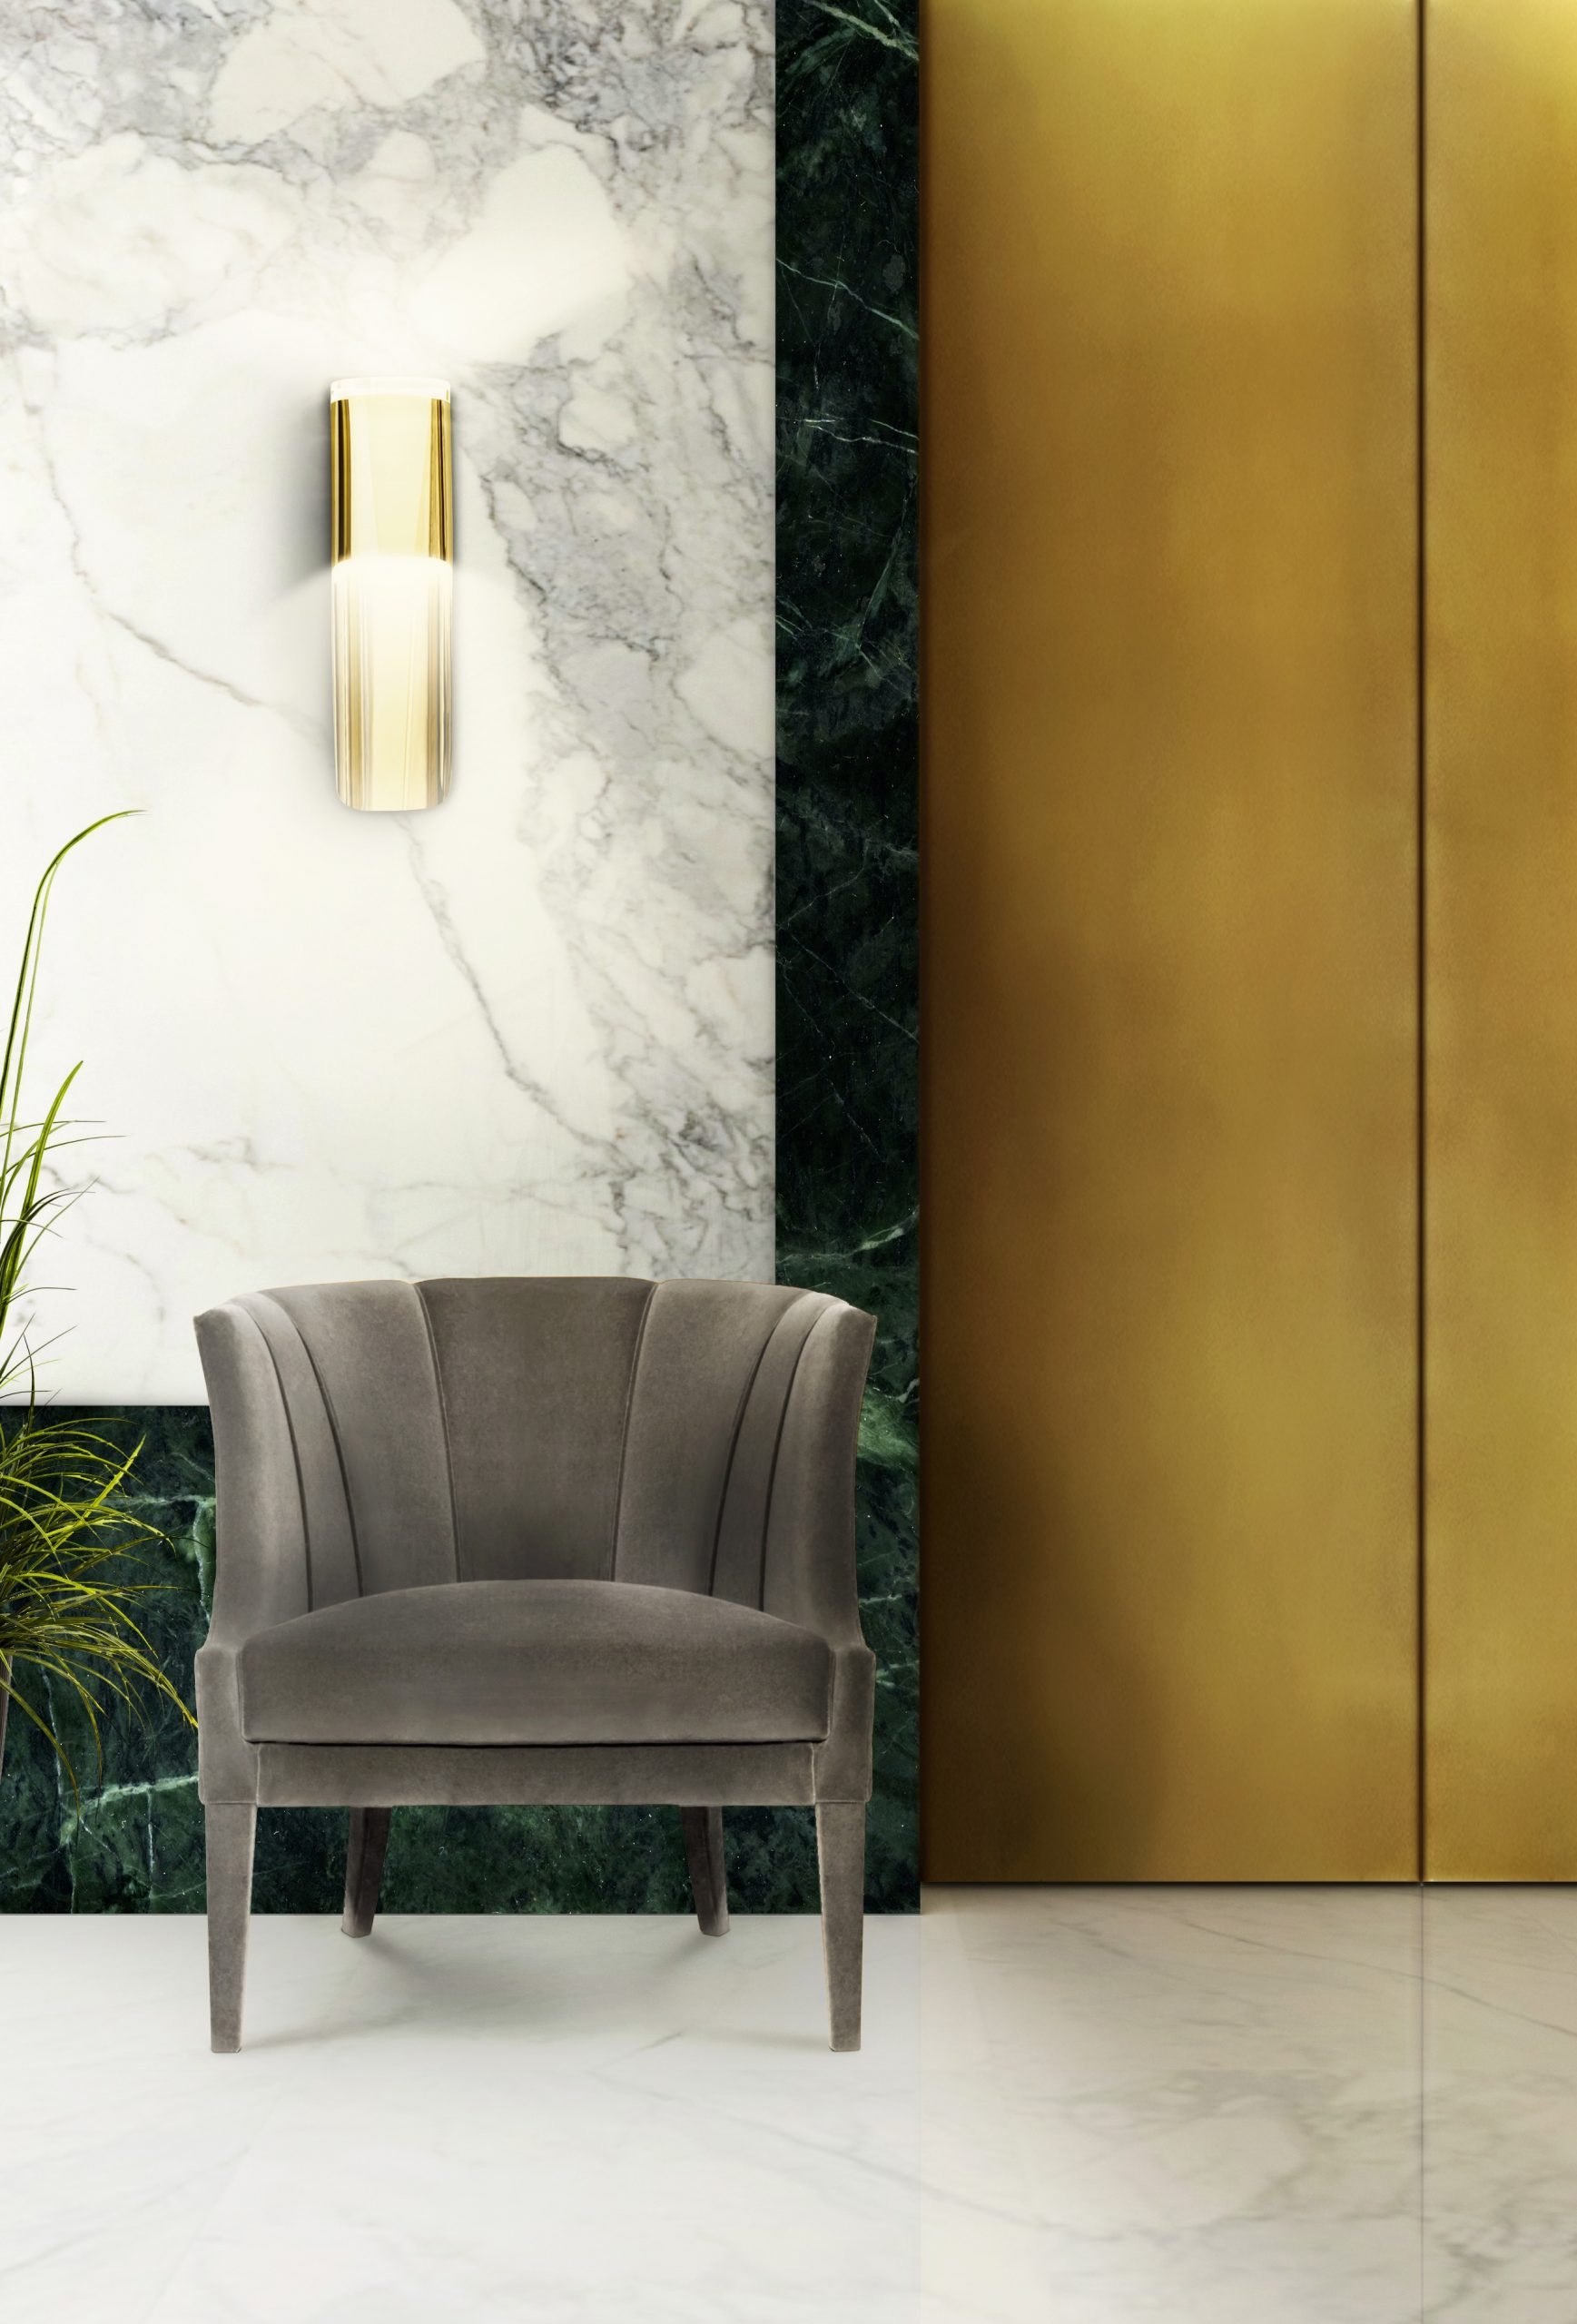 Hotel Lobbies and Waiting Spaces: A List Of 20 Modern Armchairs  modern armchairs Hotel Lobbies And Waiting Spaces: A List Of 20 Modern Armchairs Hotel Lobbies and Waiting Spaces A List Of 20 Modern Armchairs 3 scaled